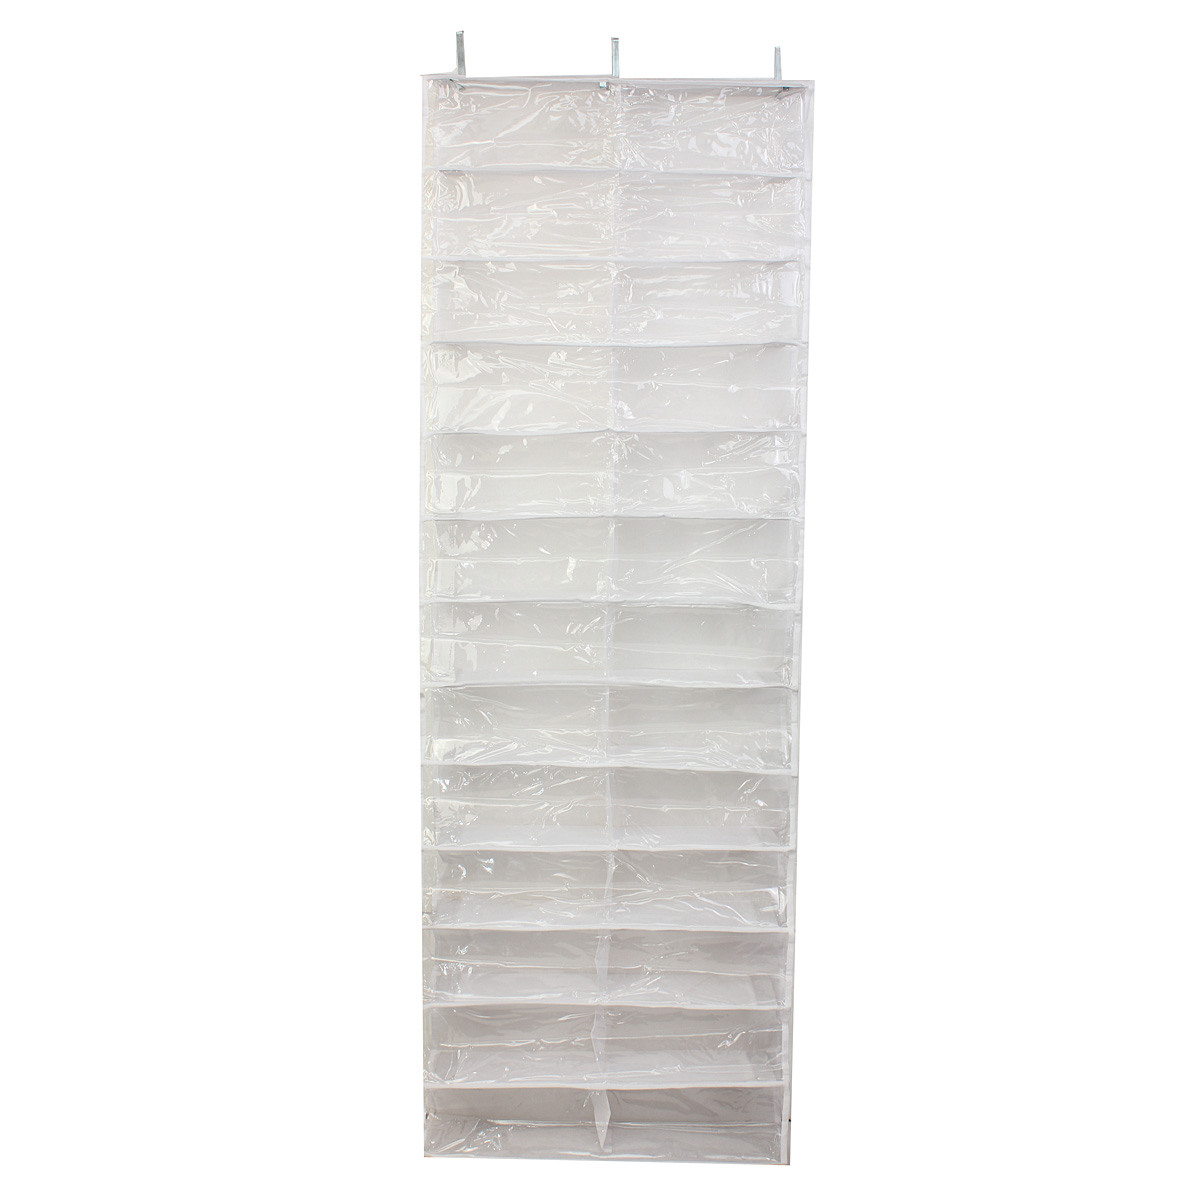 Promotion! 26 Pairs Over Door Hanging Stand Shoe Rack Shelf Storage Organiser Pocket Holder Creamy white